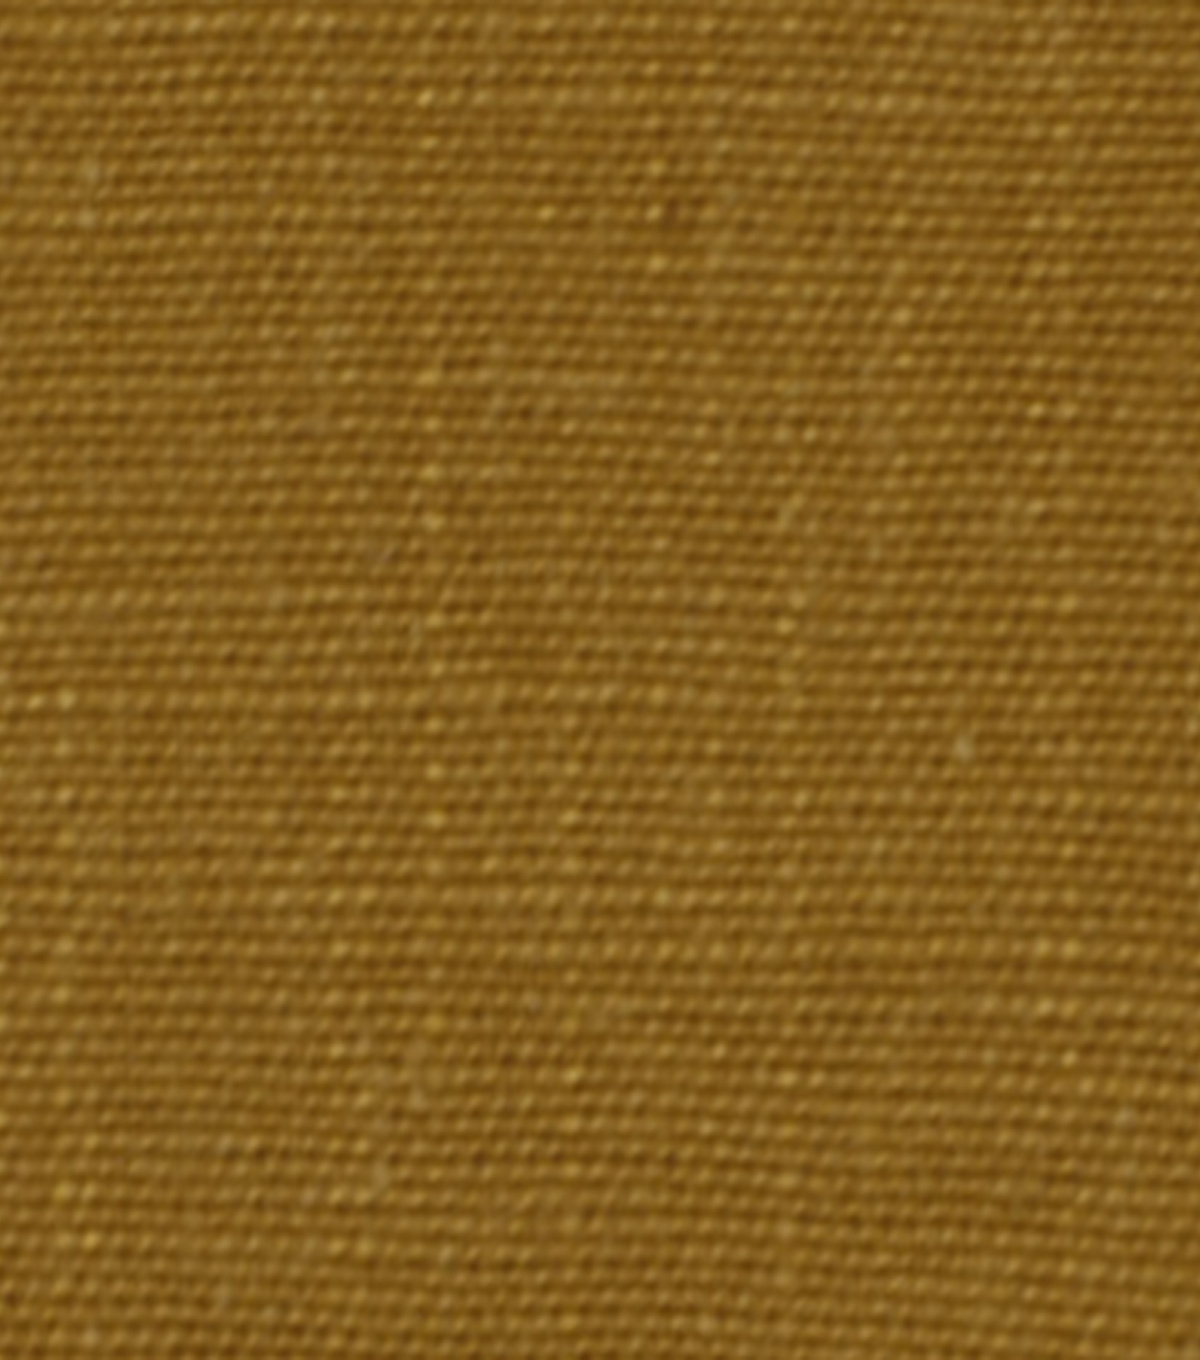 Home Decor 8\u0022x8\u0022 Fabric Swatch-Robert Allen Jaden Amber